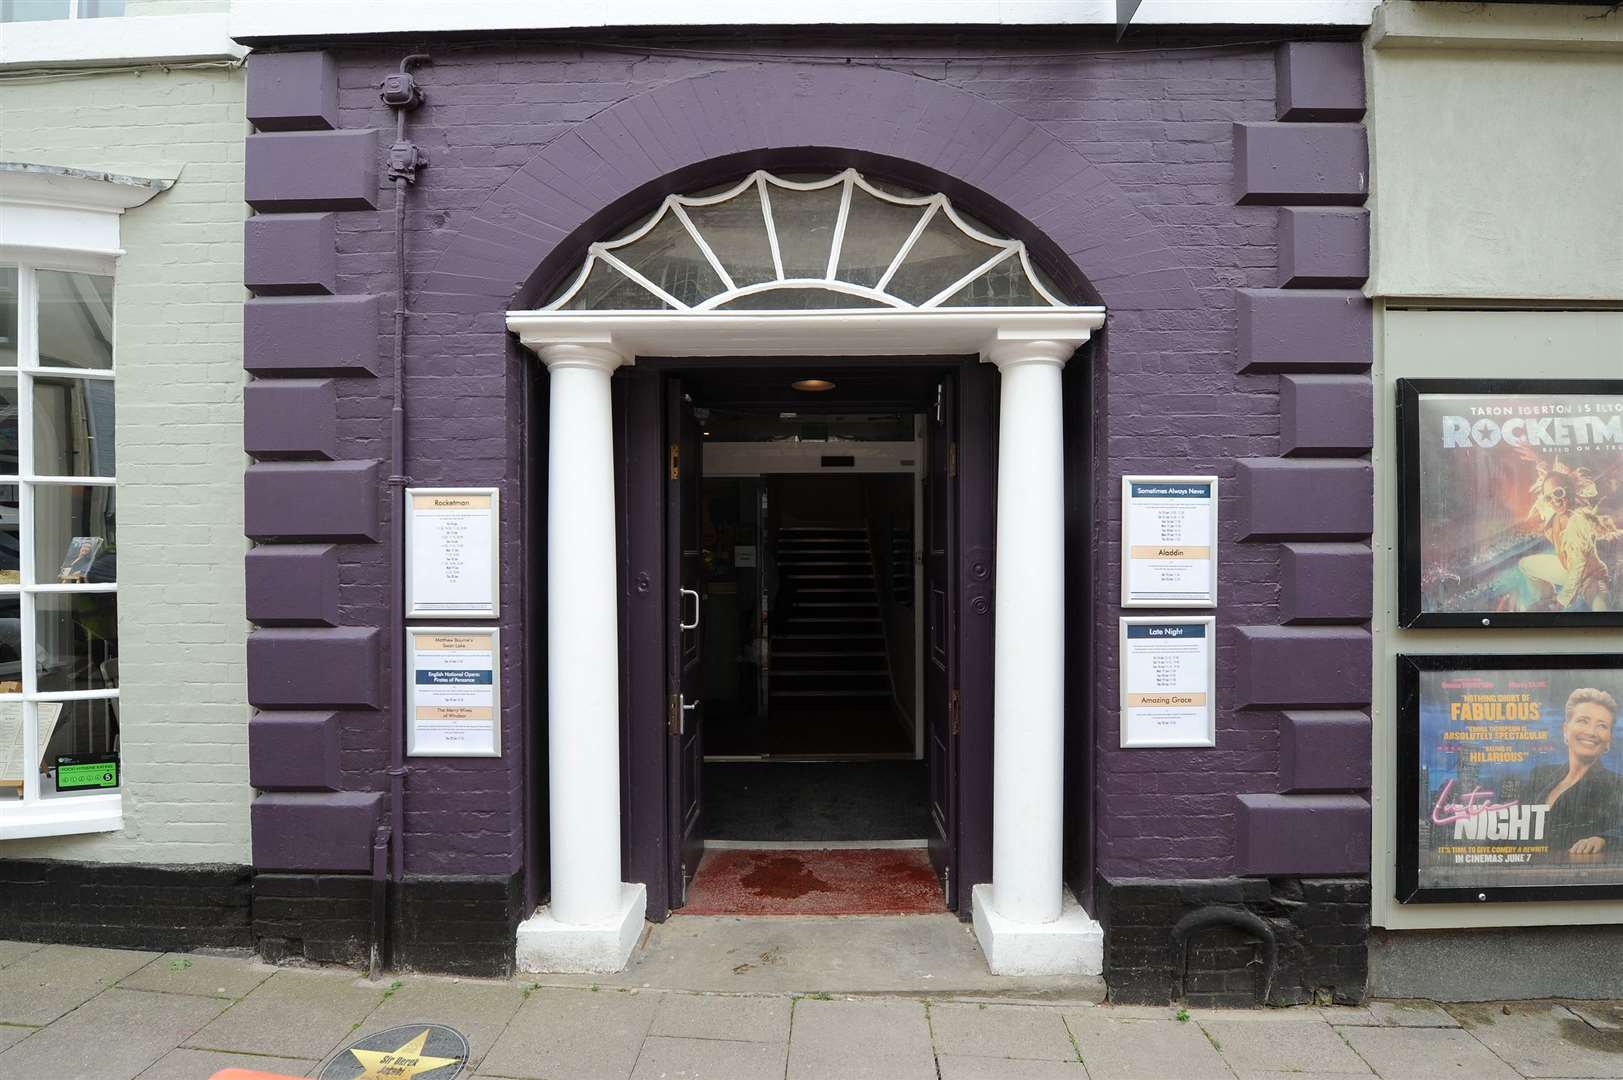 Behind closed doors at Abbeygate Cinema